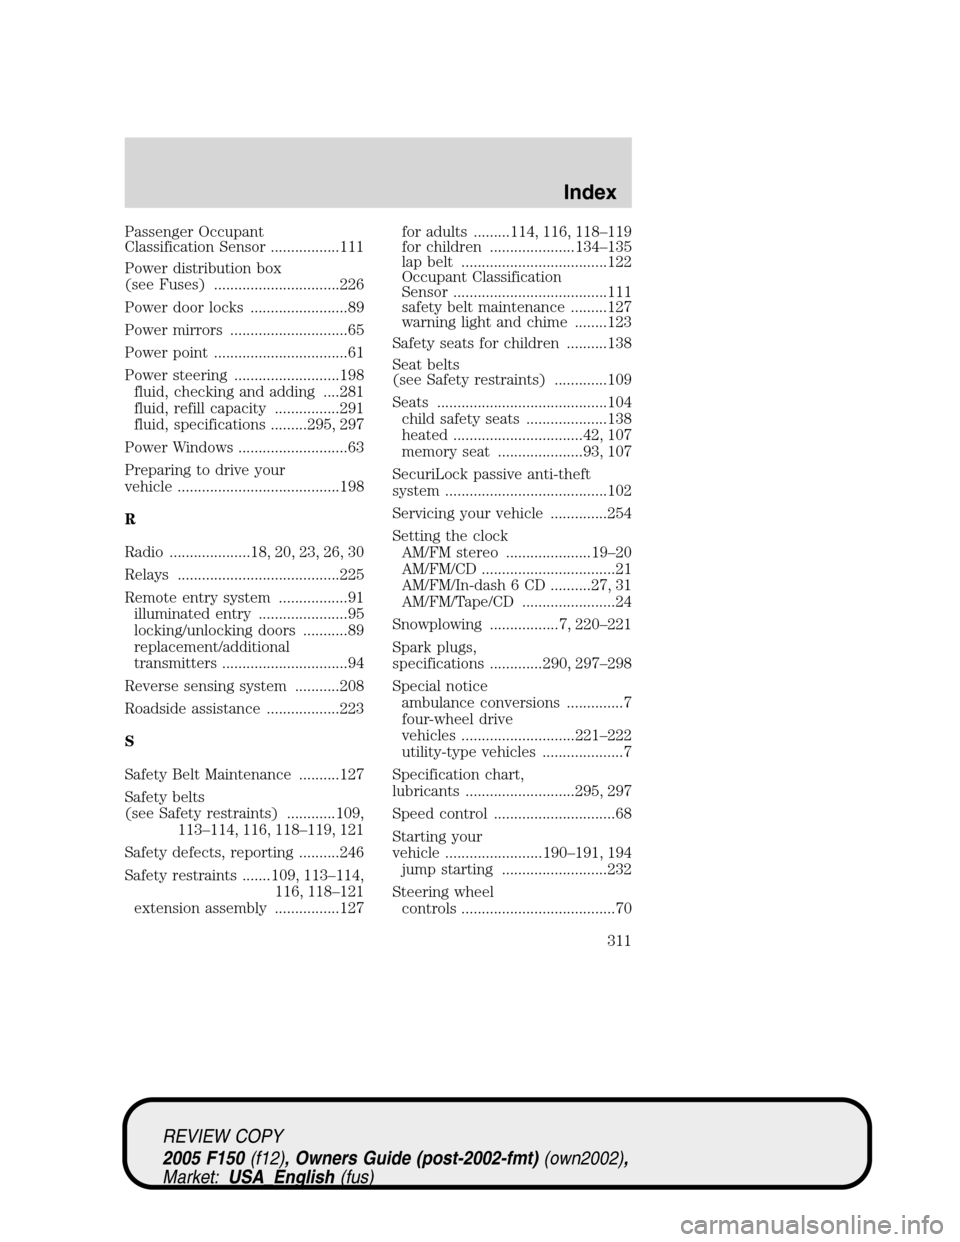 medium resolution of ford f150 2005 11 g owners manual page 311